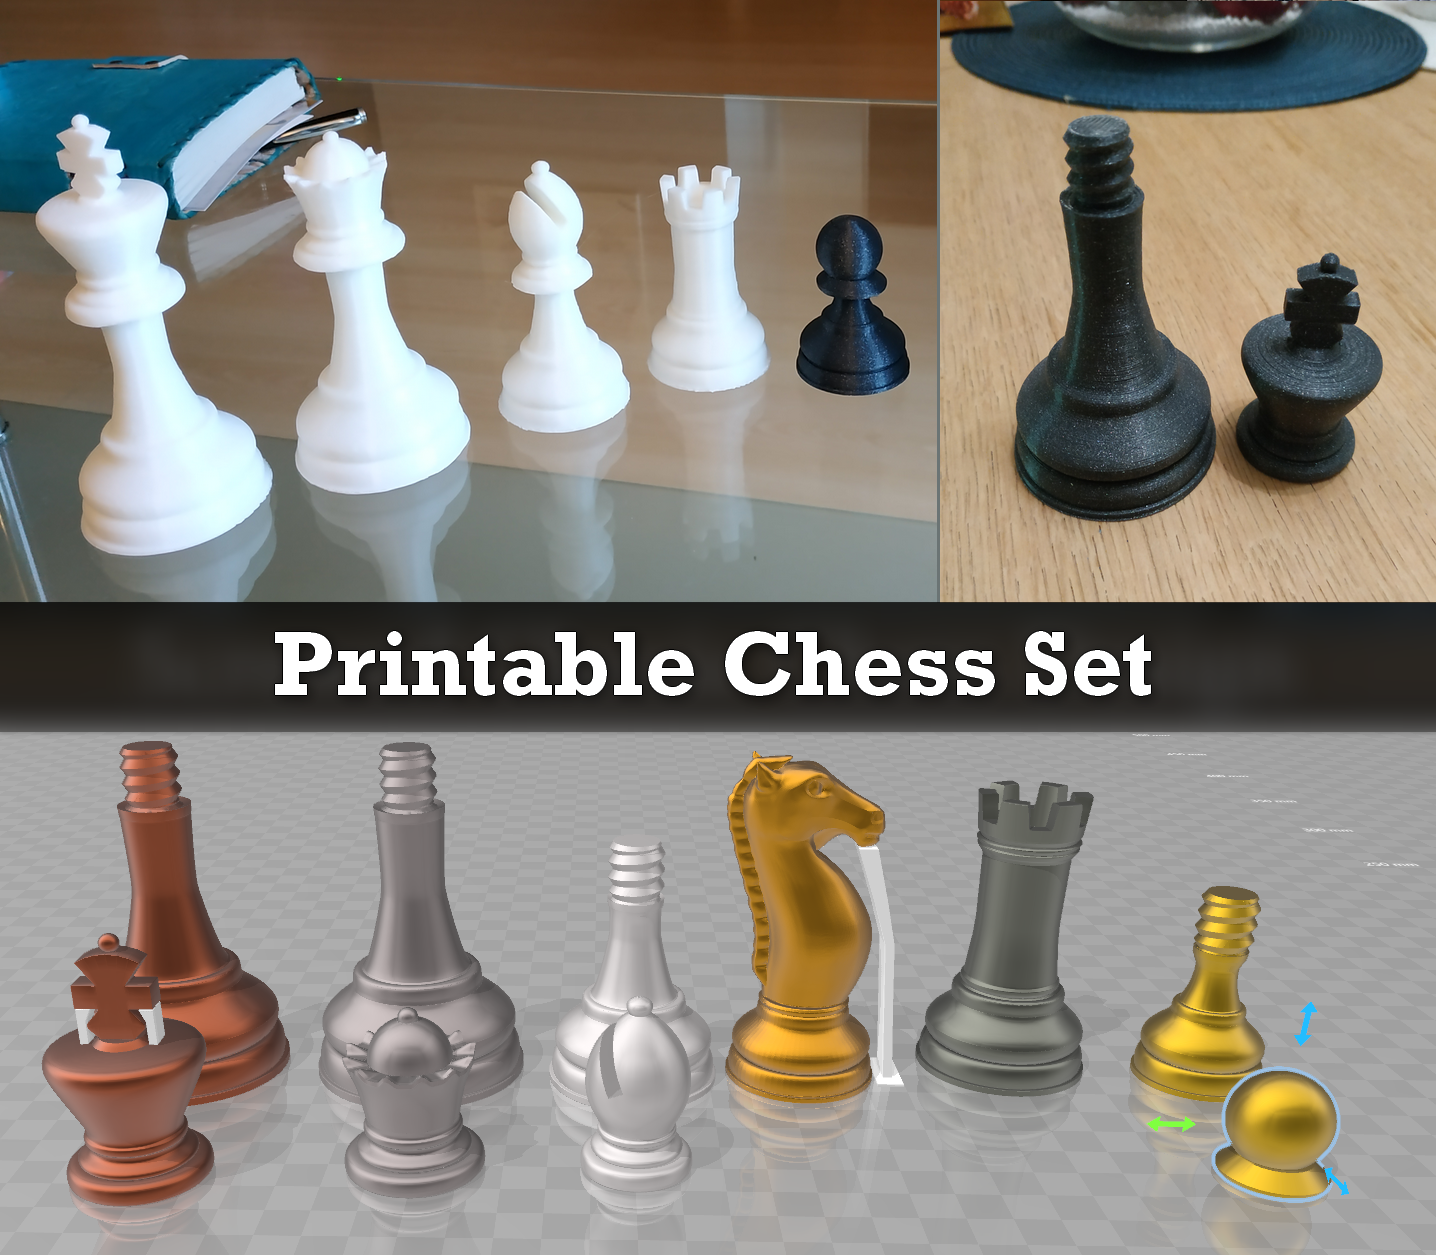 Printable Chess Set (no overhang)